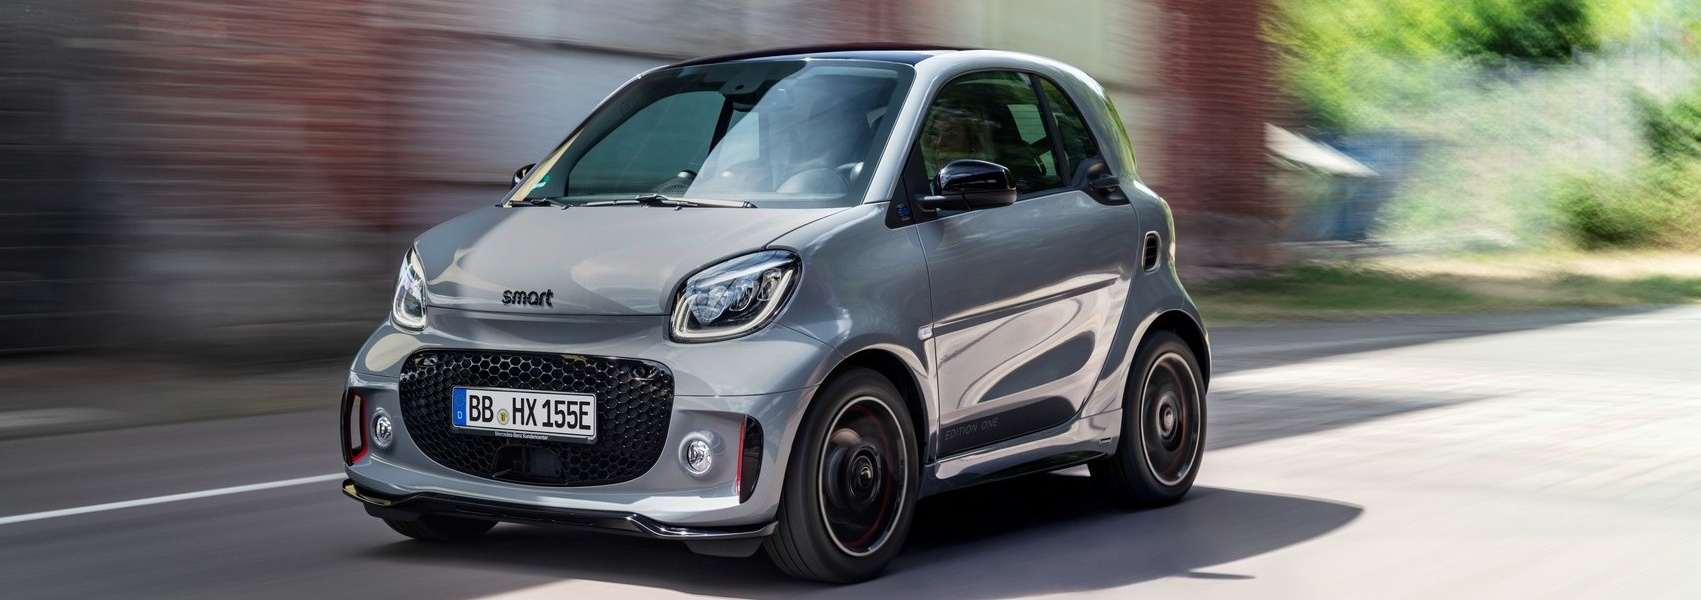 smart-fortwo-forfour-2.jpg